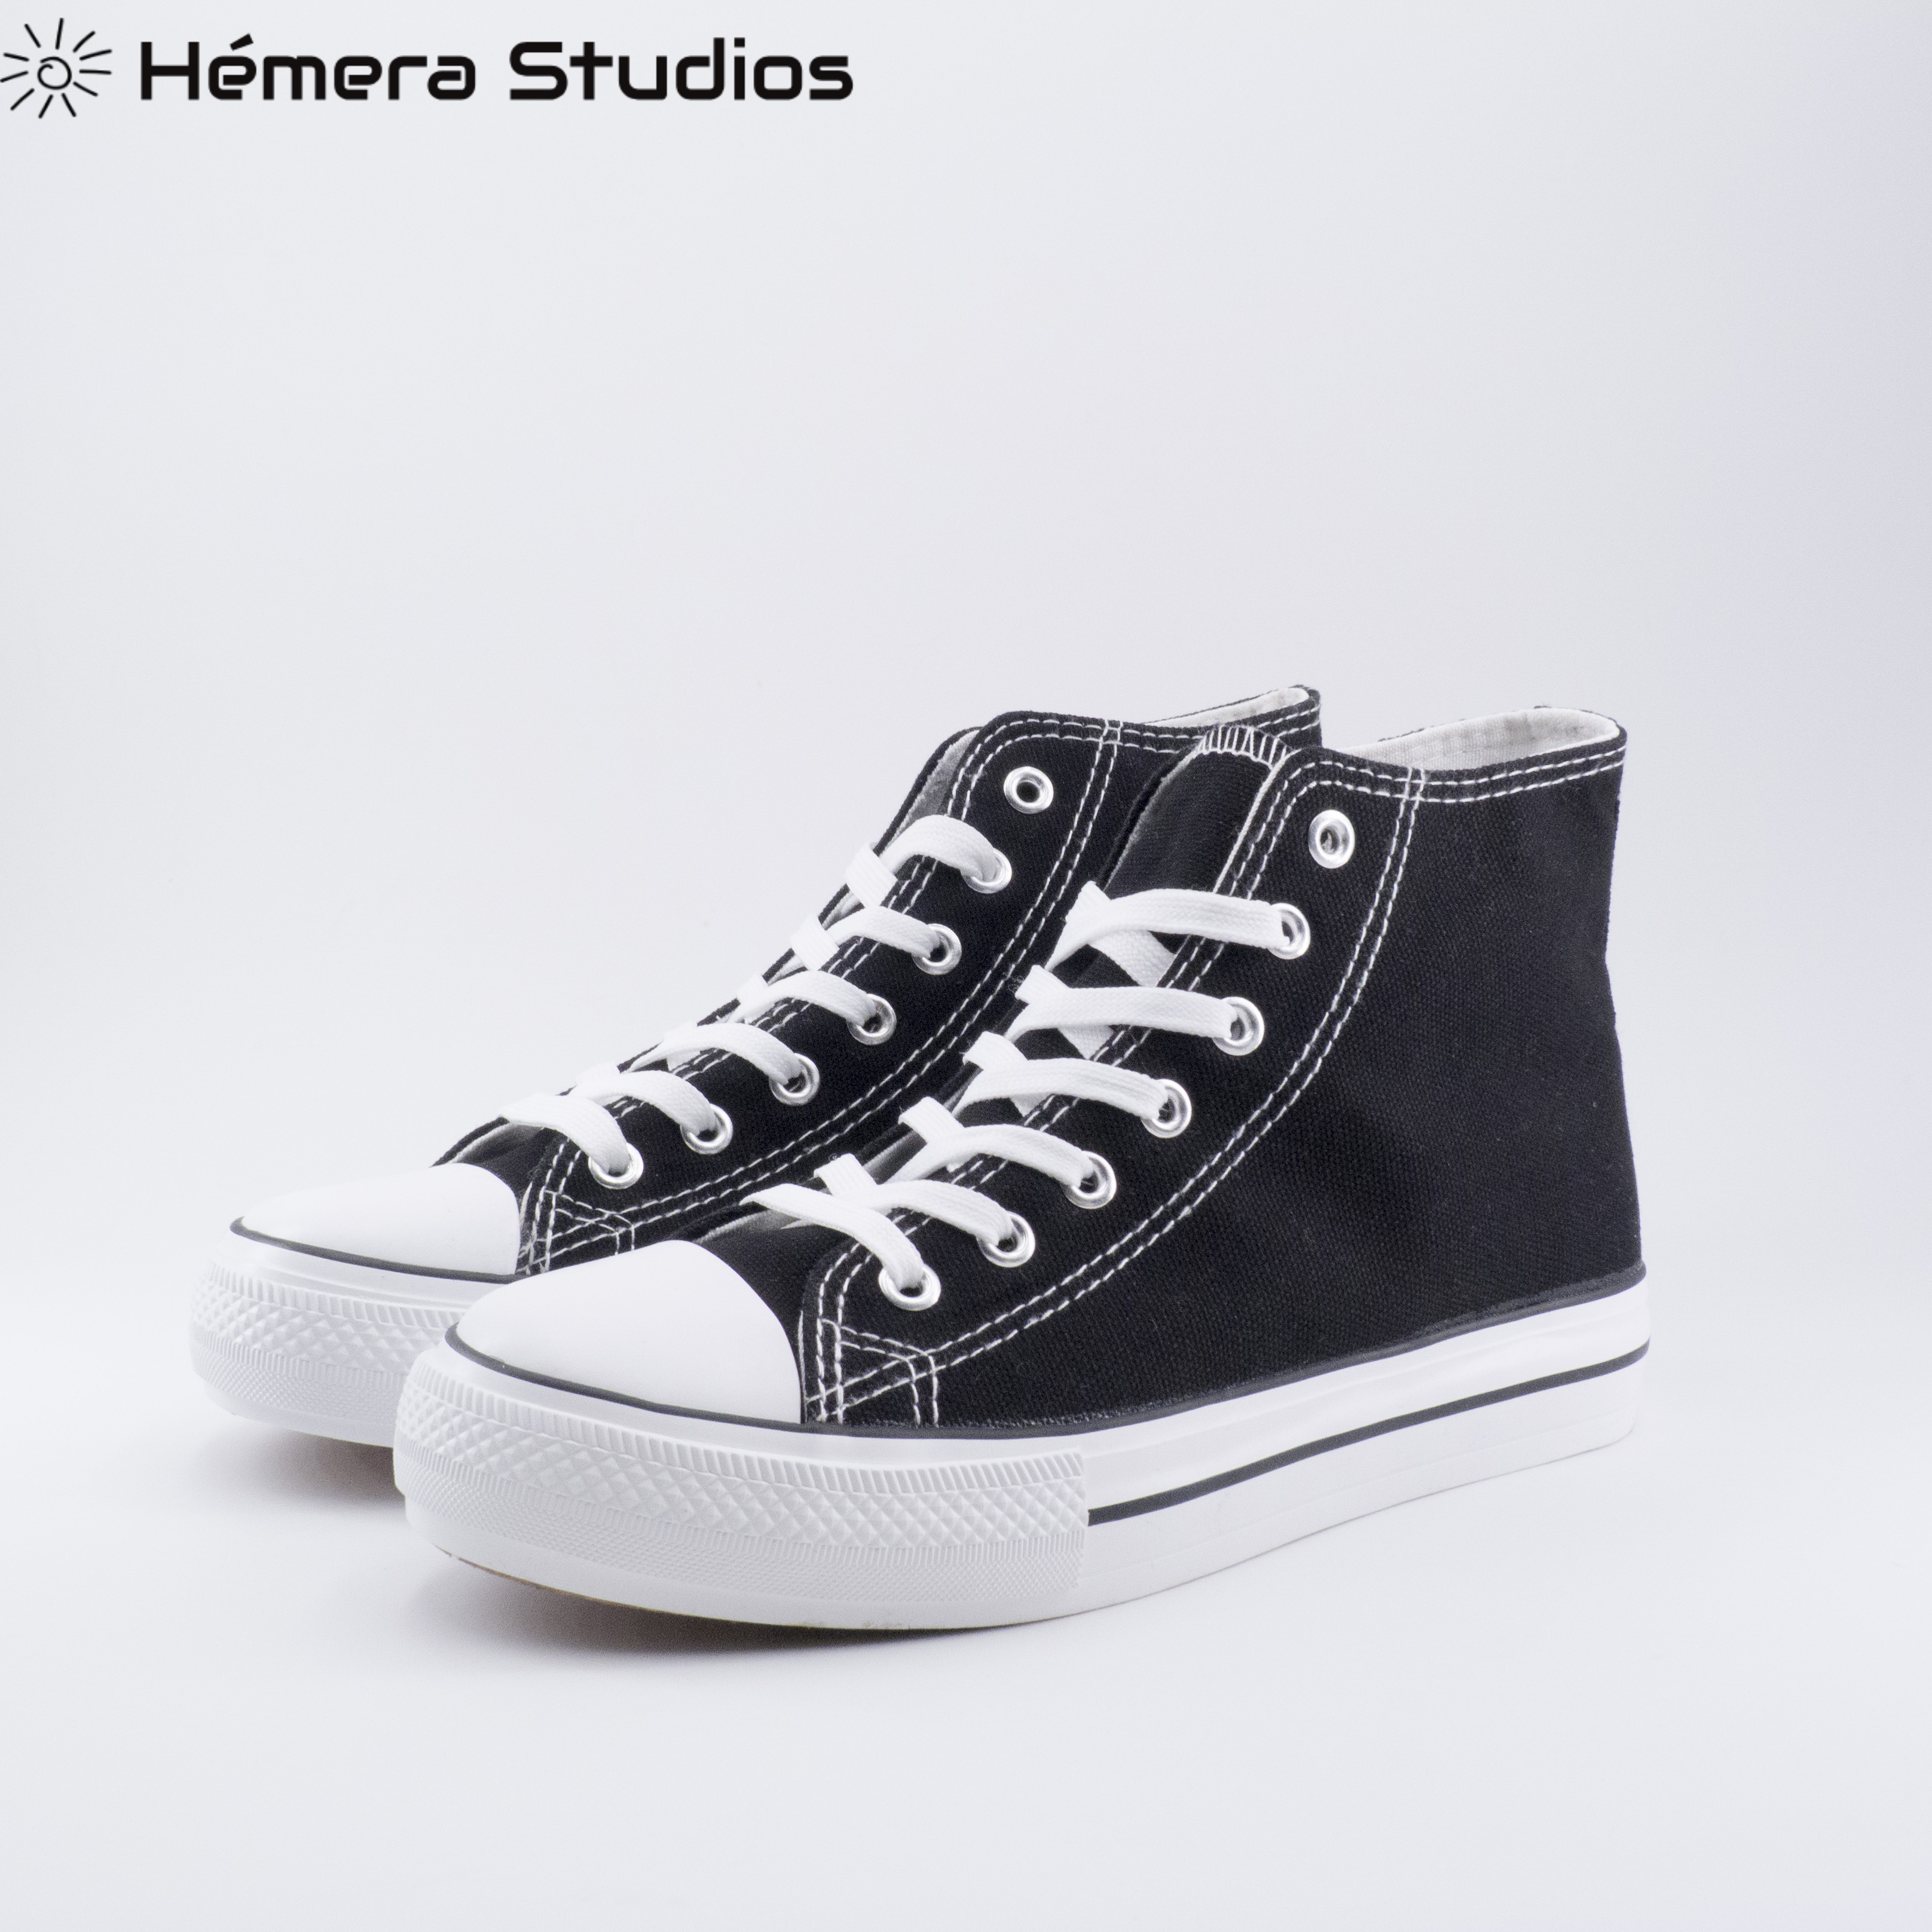 Canvas Sneakers For Women With Close's Lacing And Toecap's Rubber Gum Footwear Shoes Women Casual Style Nueva Collection Tracks